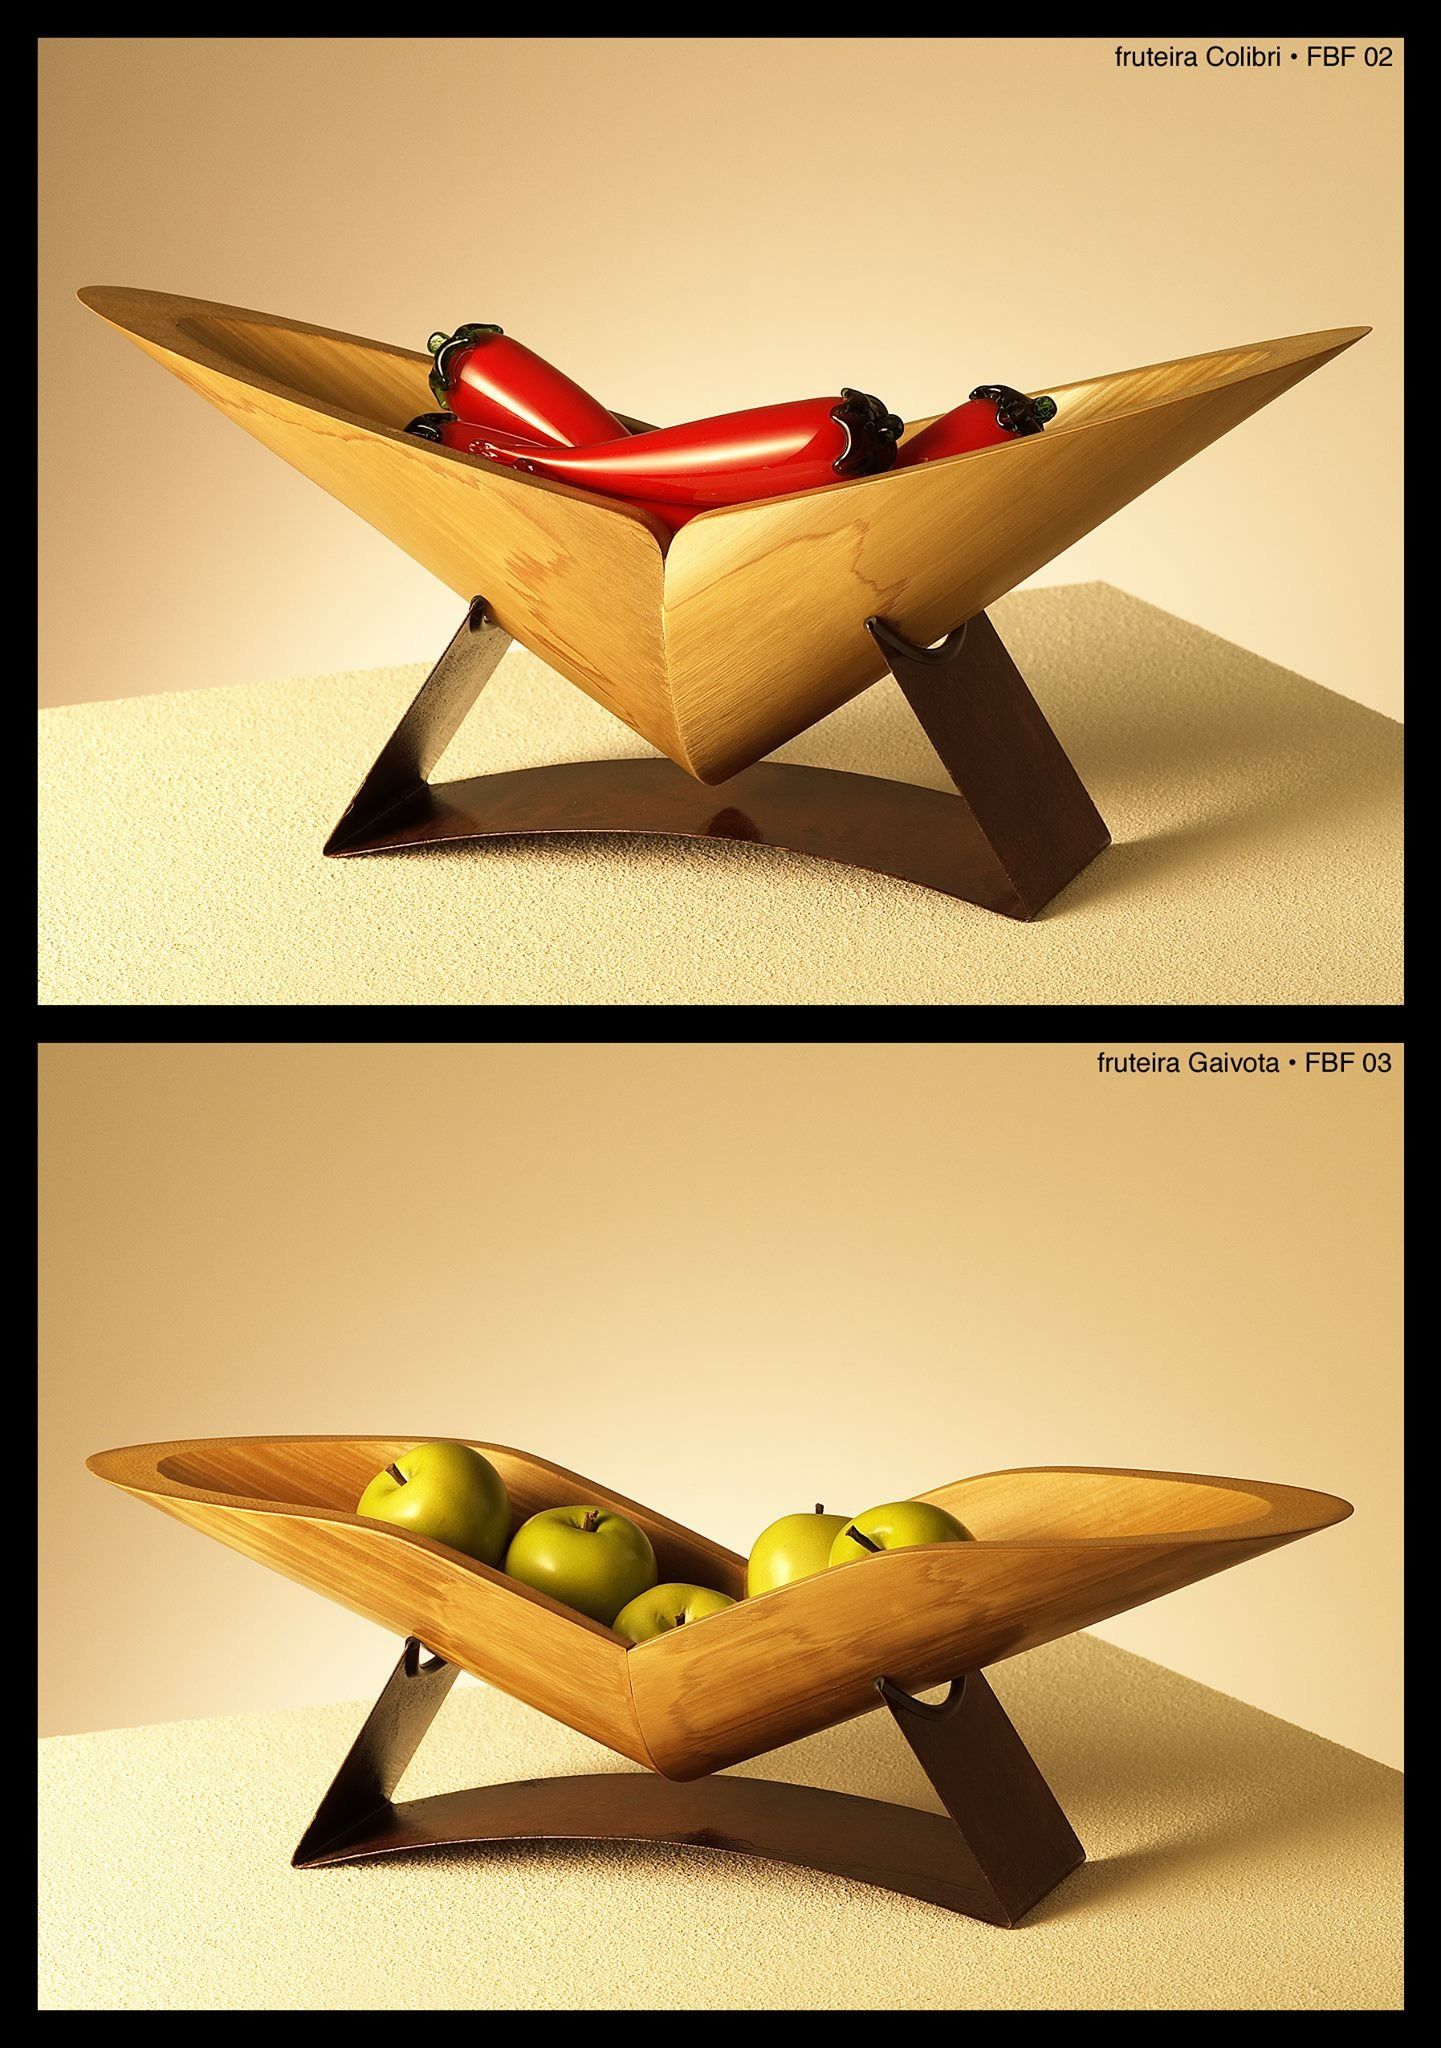 Pin By Juan On Bamboo Pinterest Bamboo Crafts Bamboo Ideas  # Colombiana De Muebles Wl